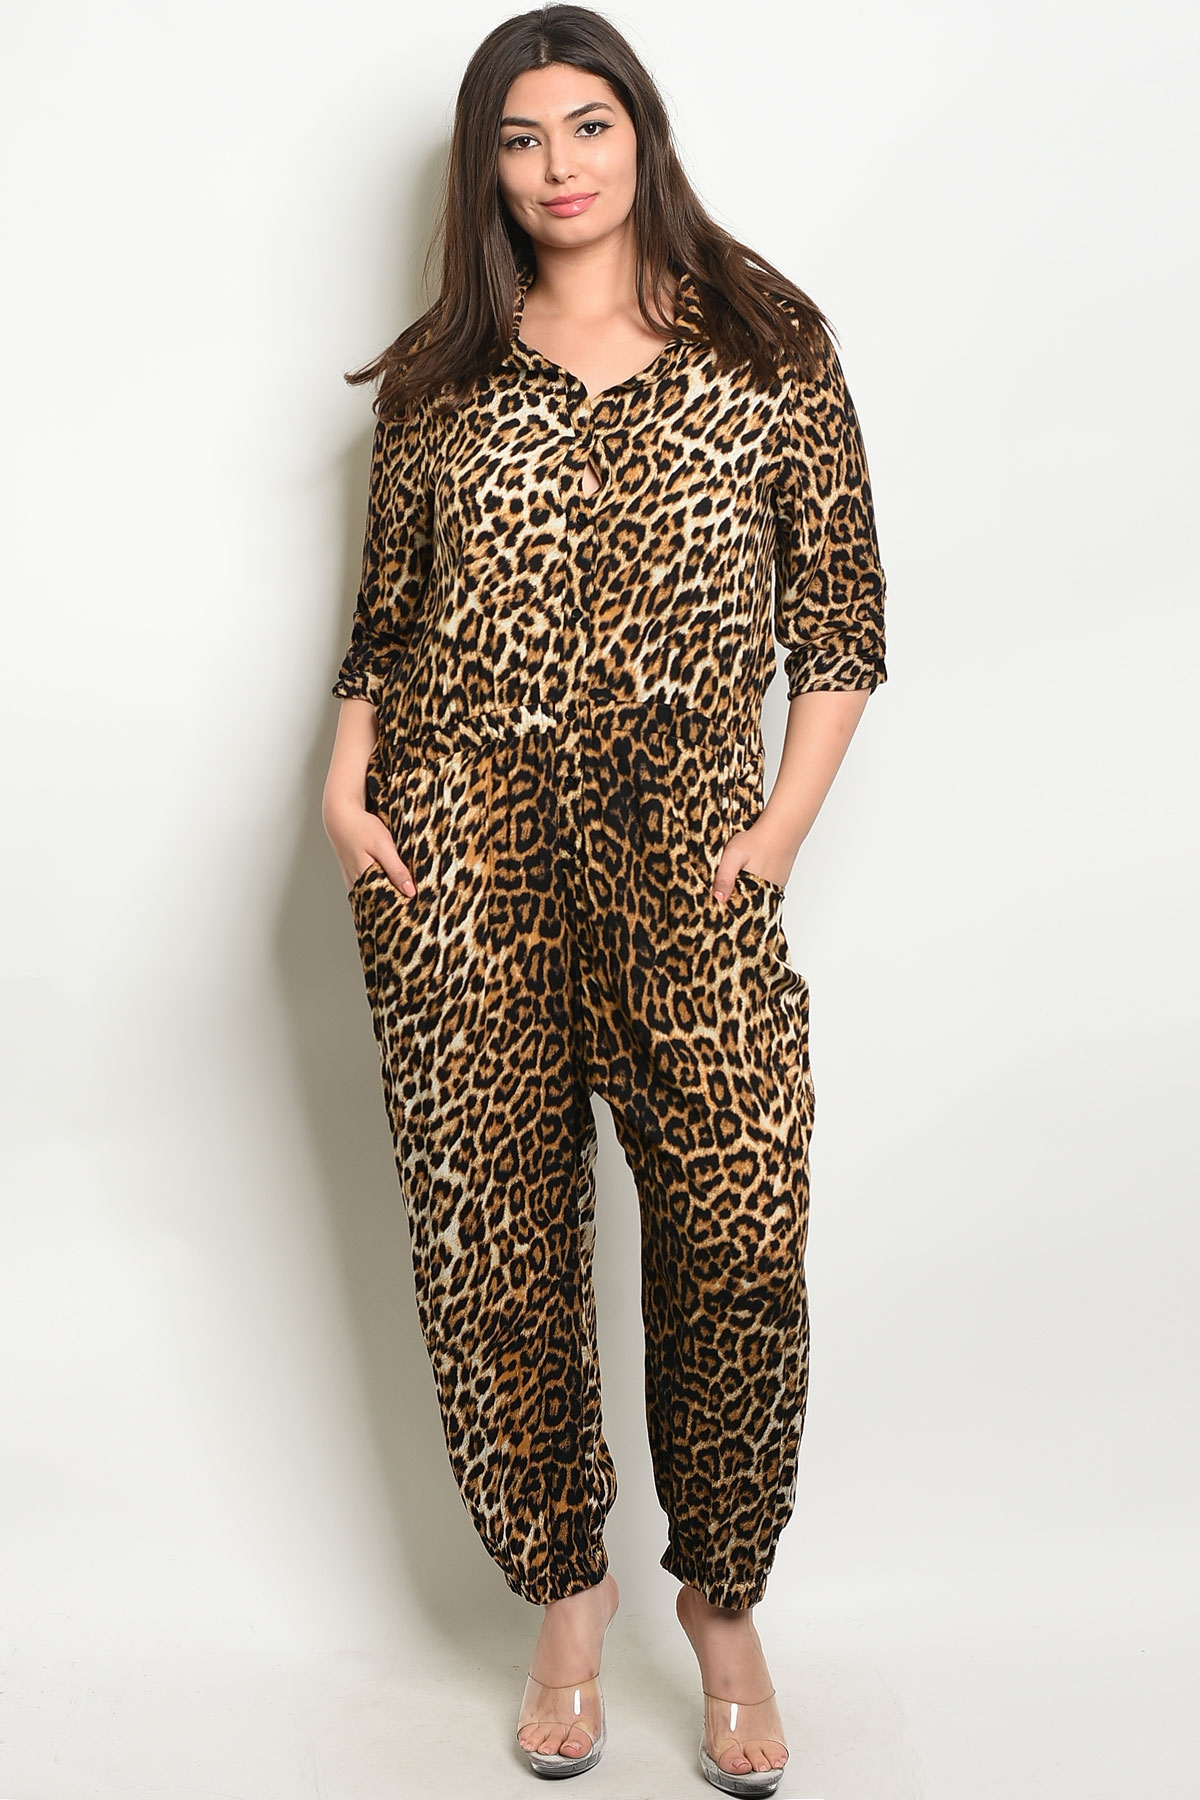 eb3ae7ff085a ... BLACK CHEETAH PRINT PLUS SIZE JUMPSUIT 2-2. Larger Photo ...